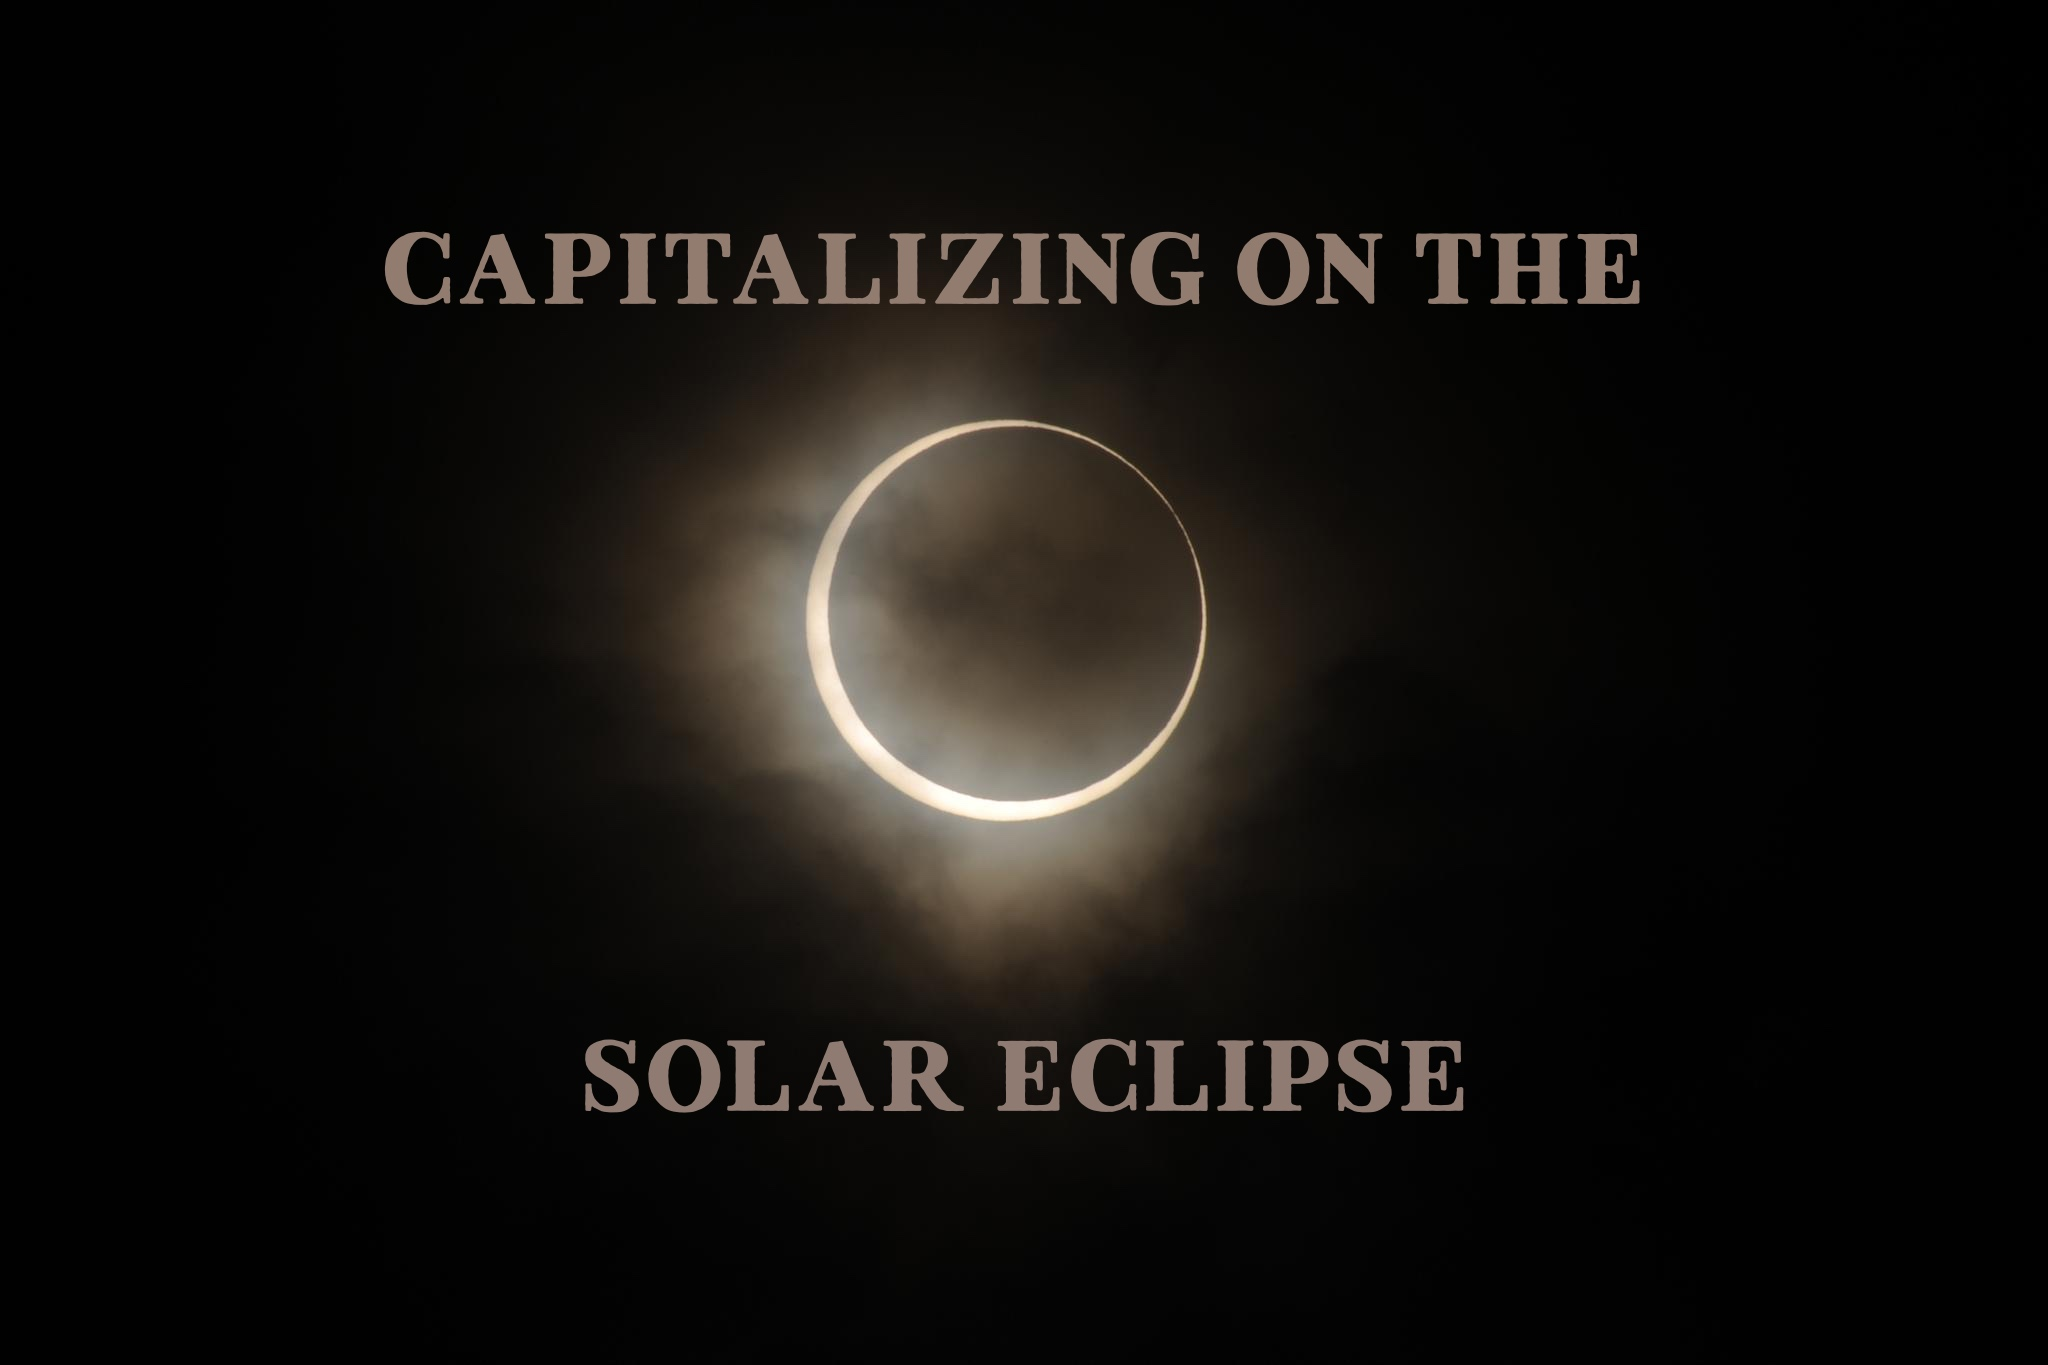 Capitalizing on the Solar Eclipse